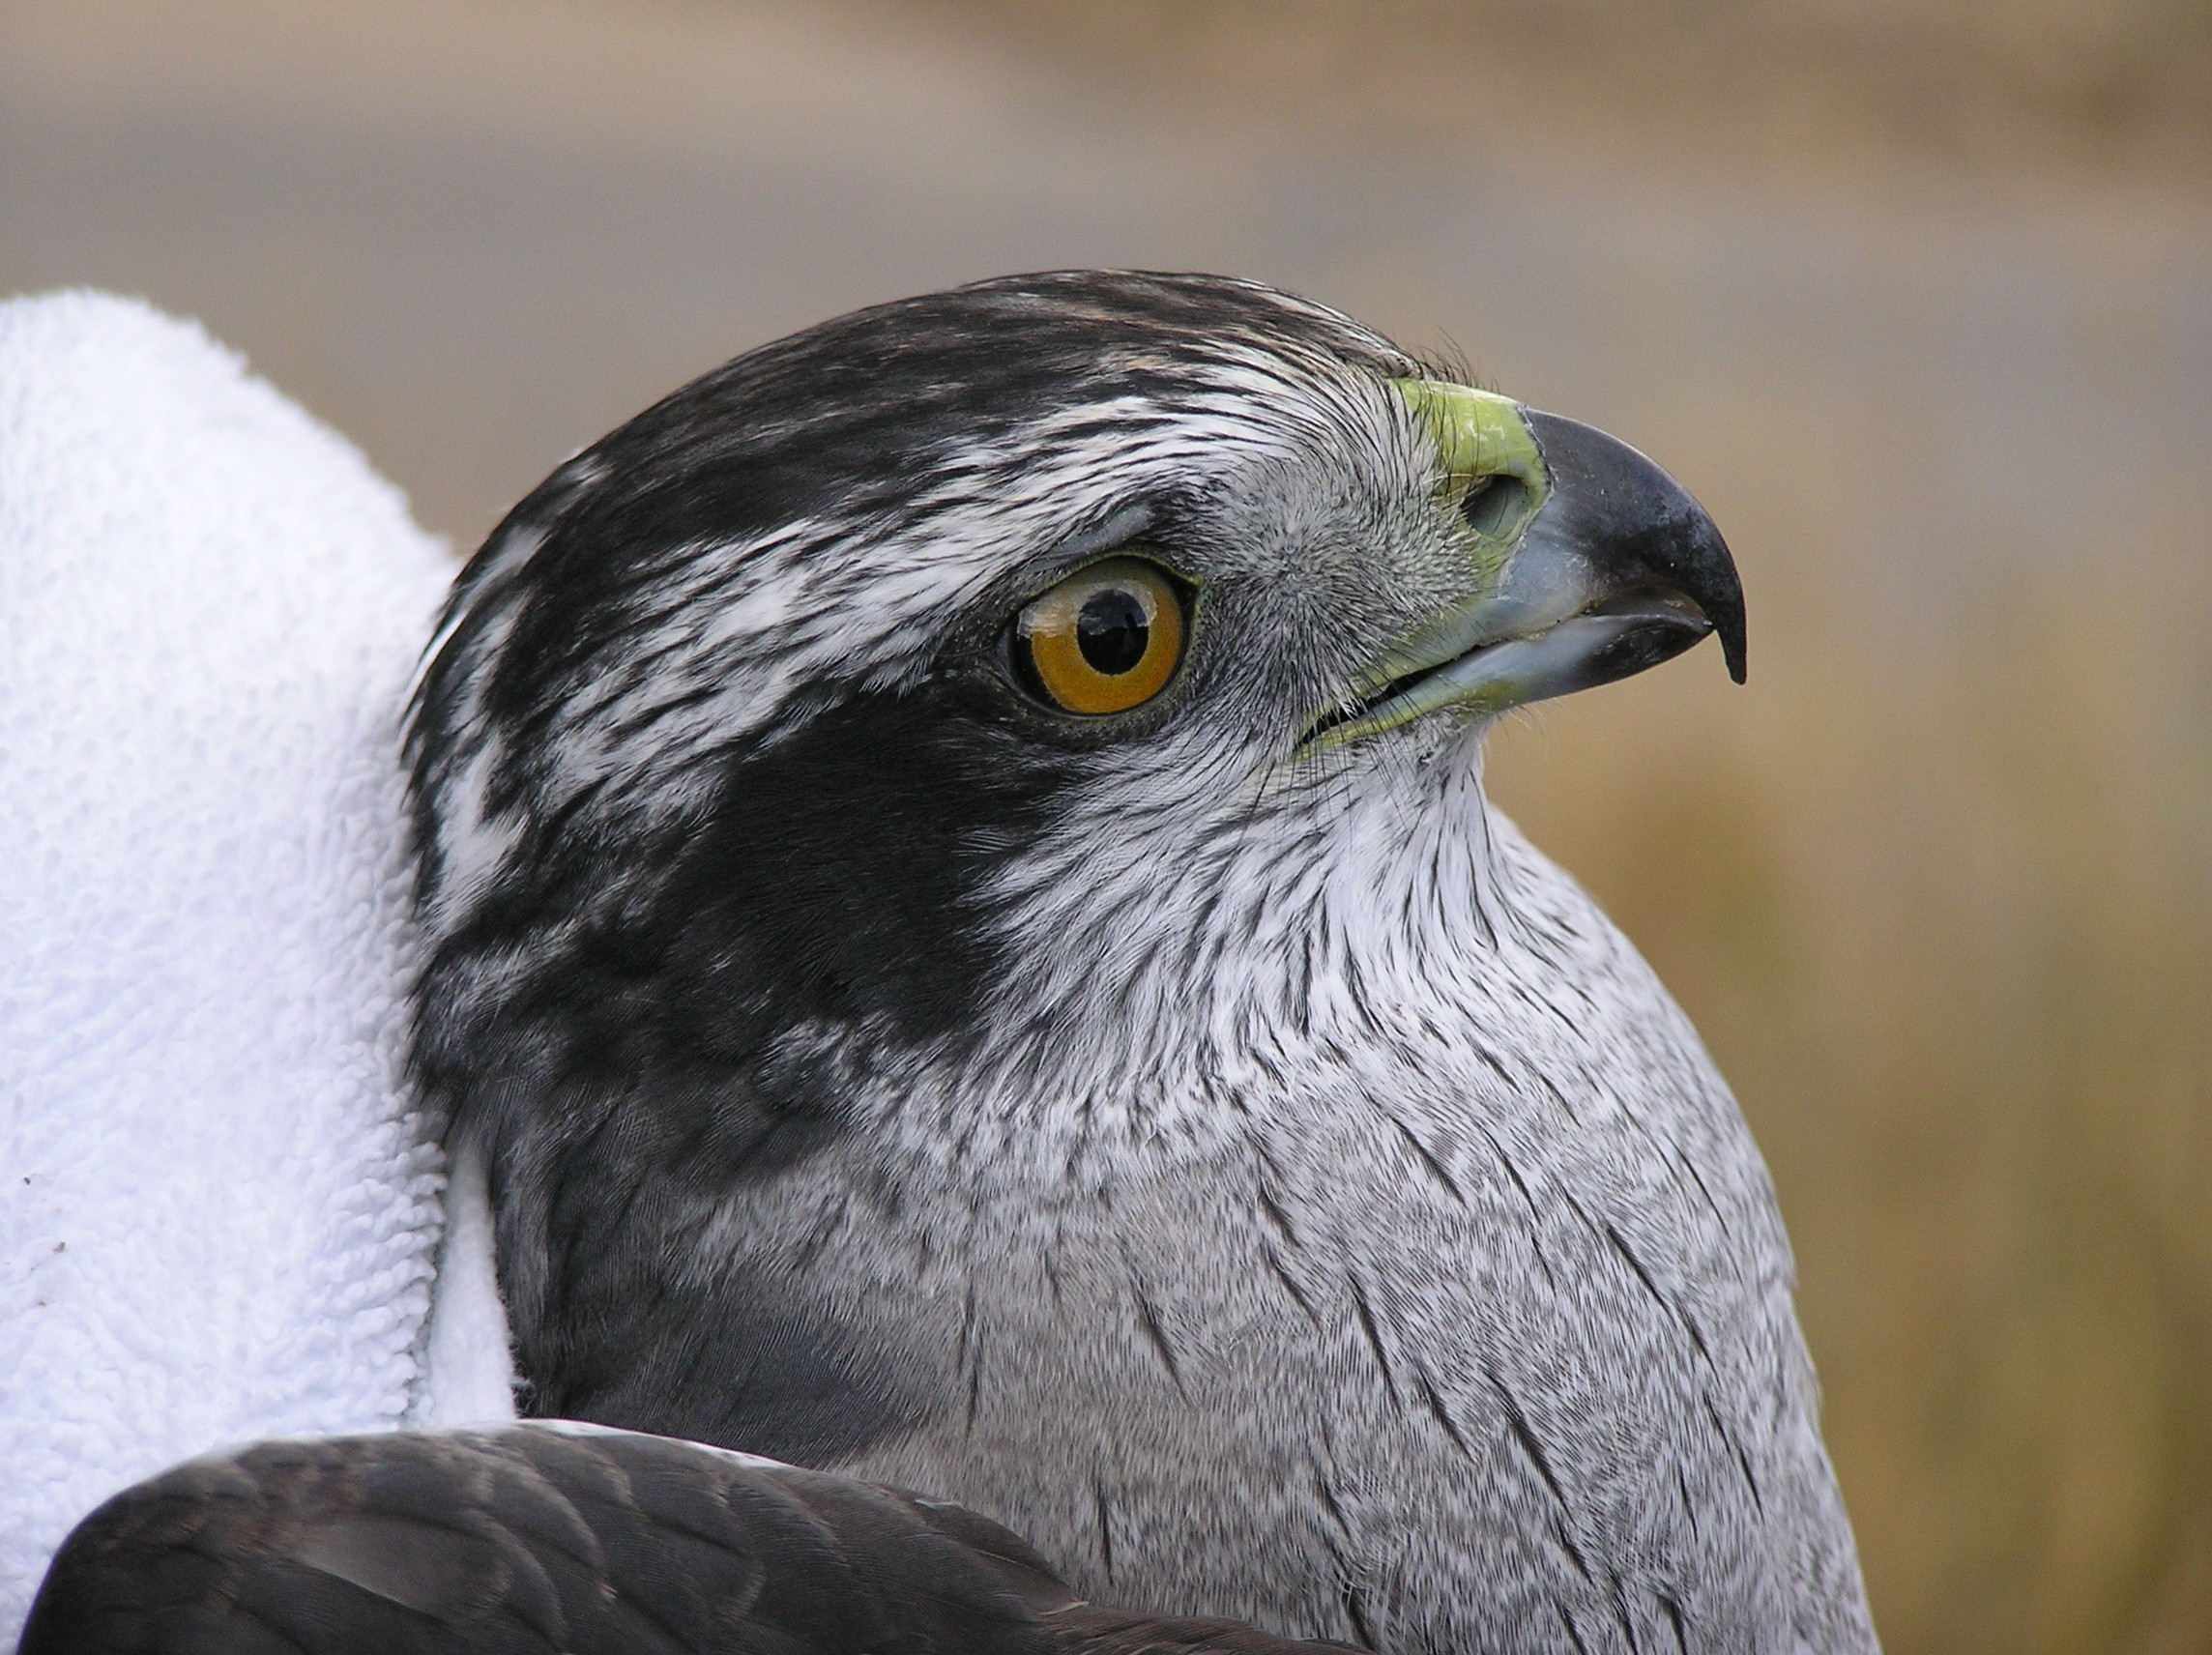 064f captured Goshawk.JPG